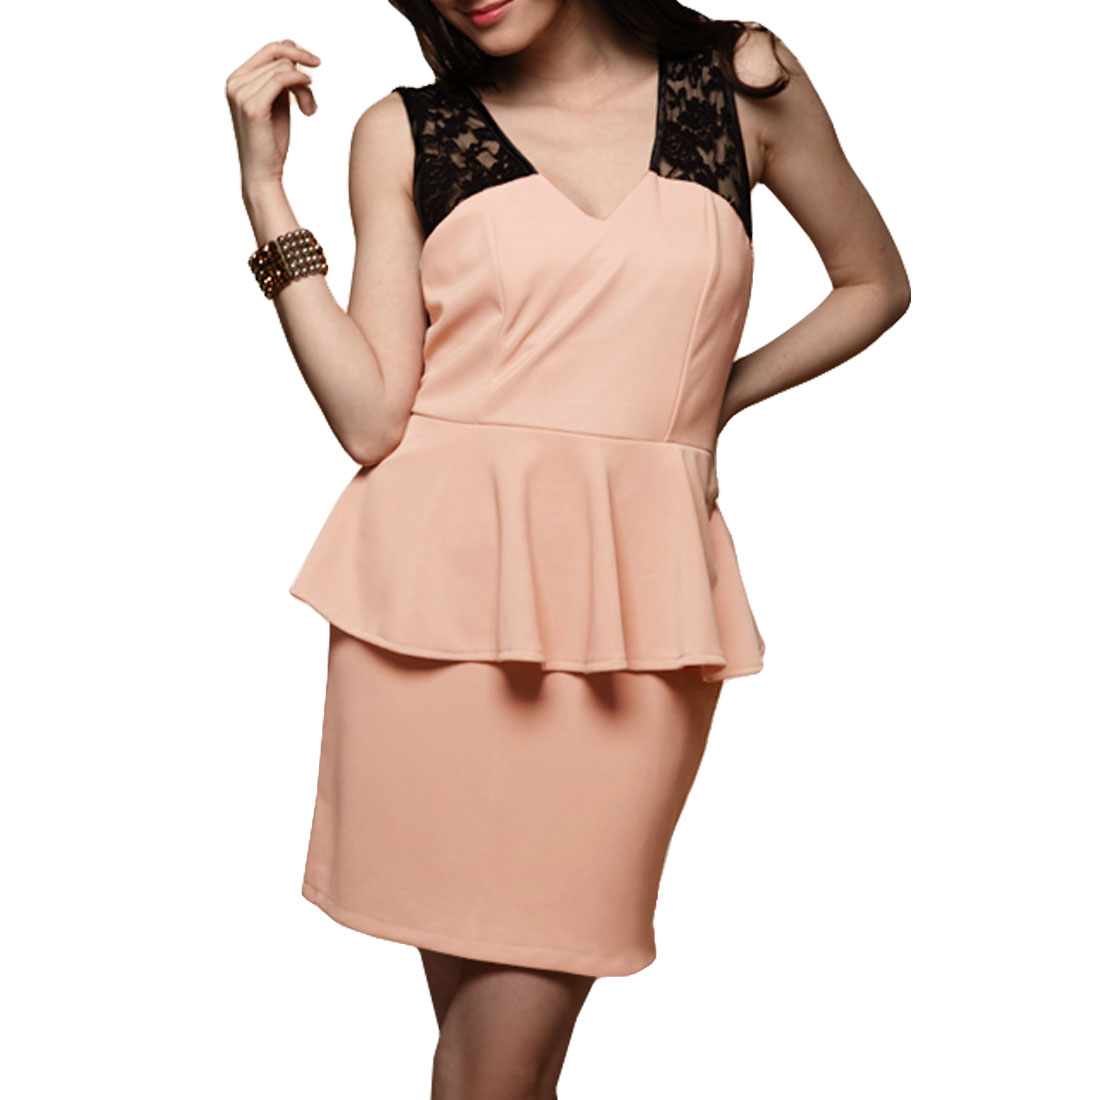 XS Woman Pink V Neck Sleeveless Lace Split Mini Dress